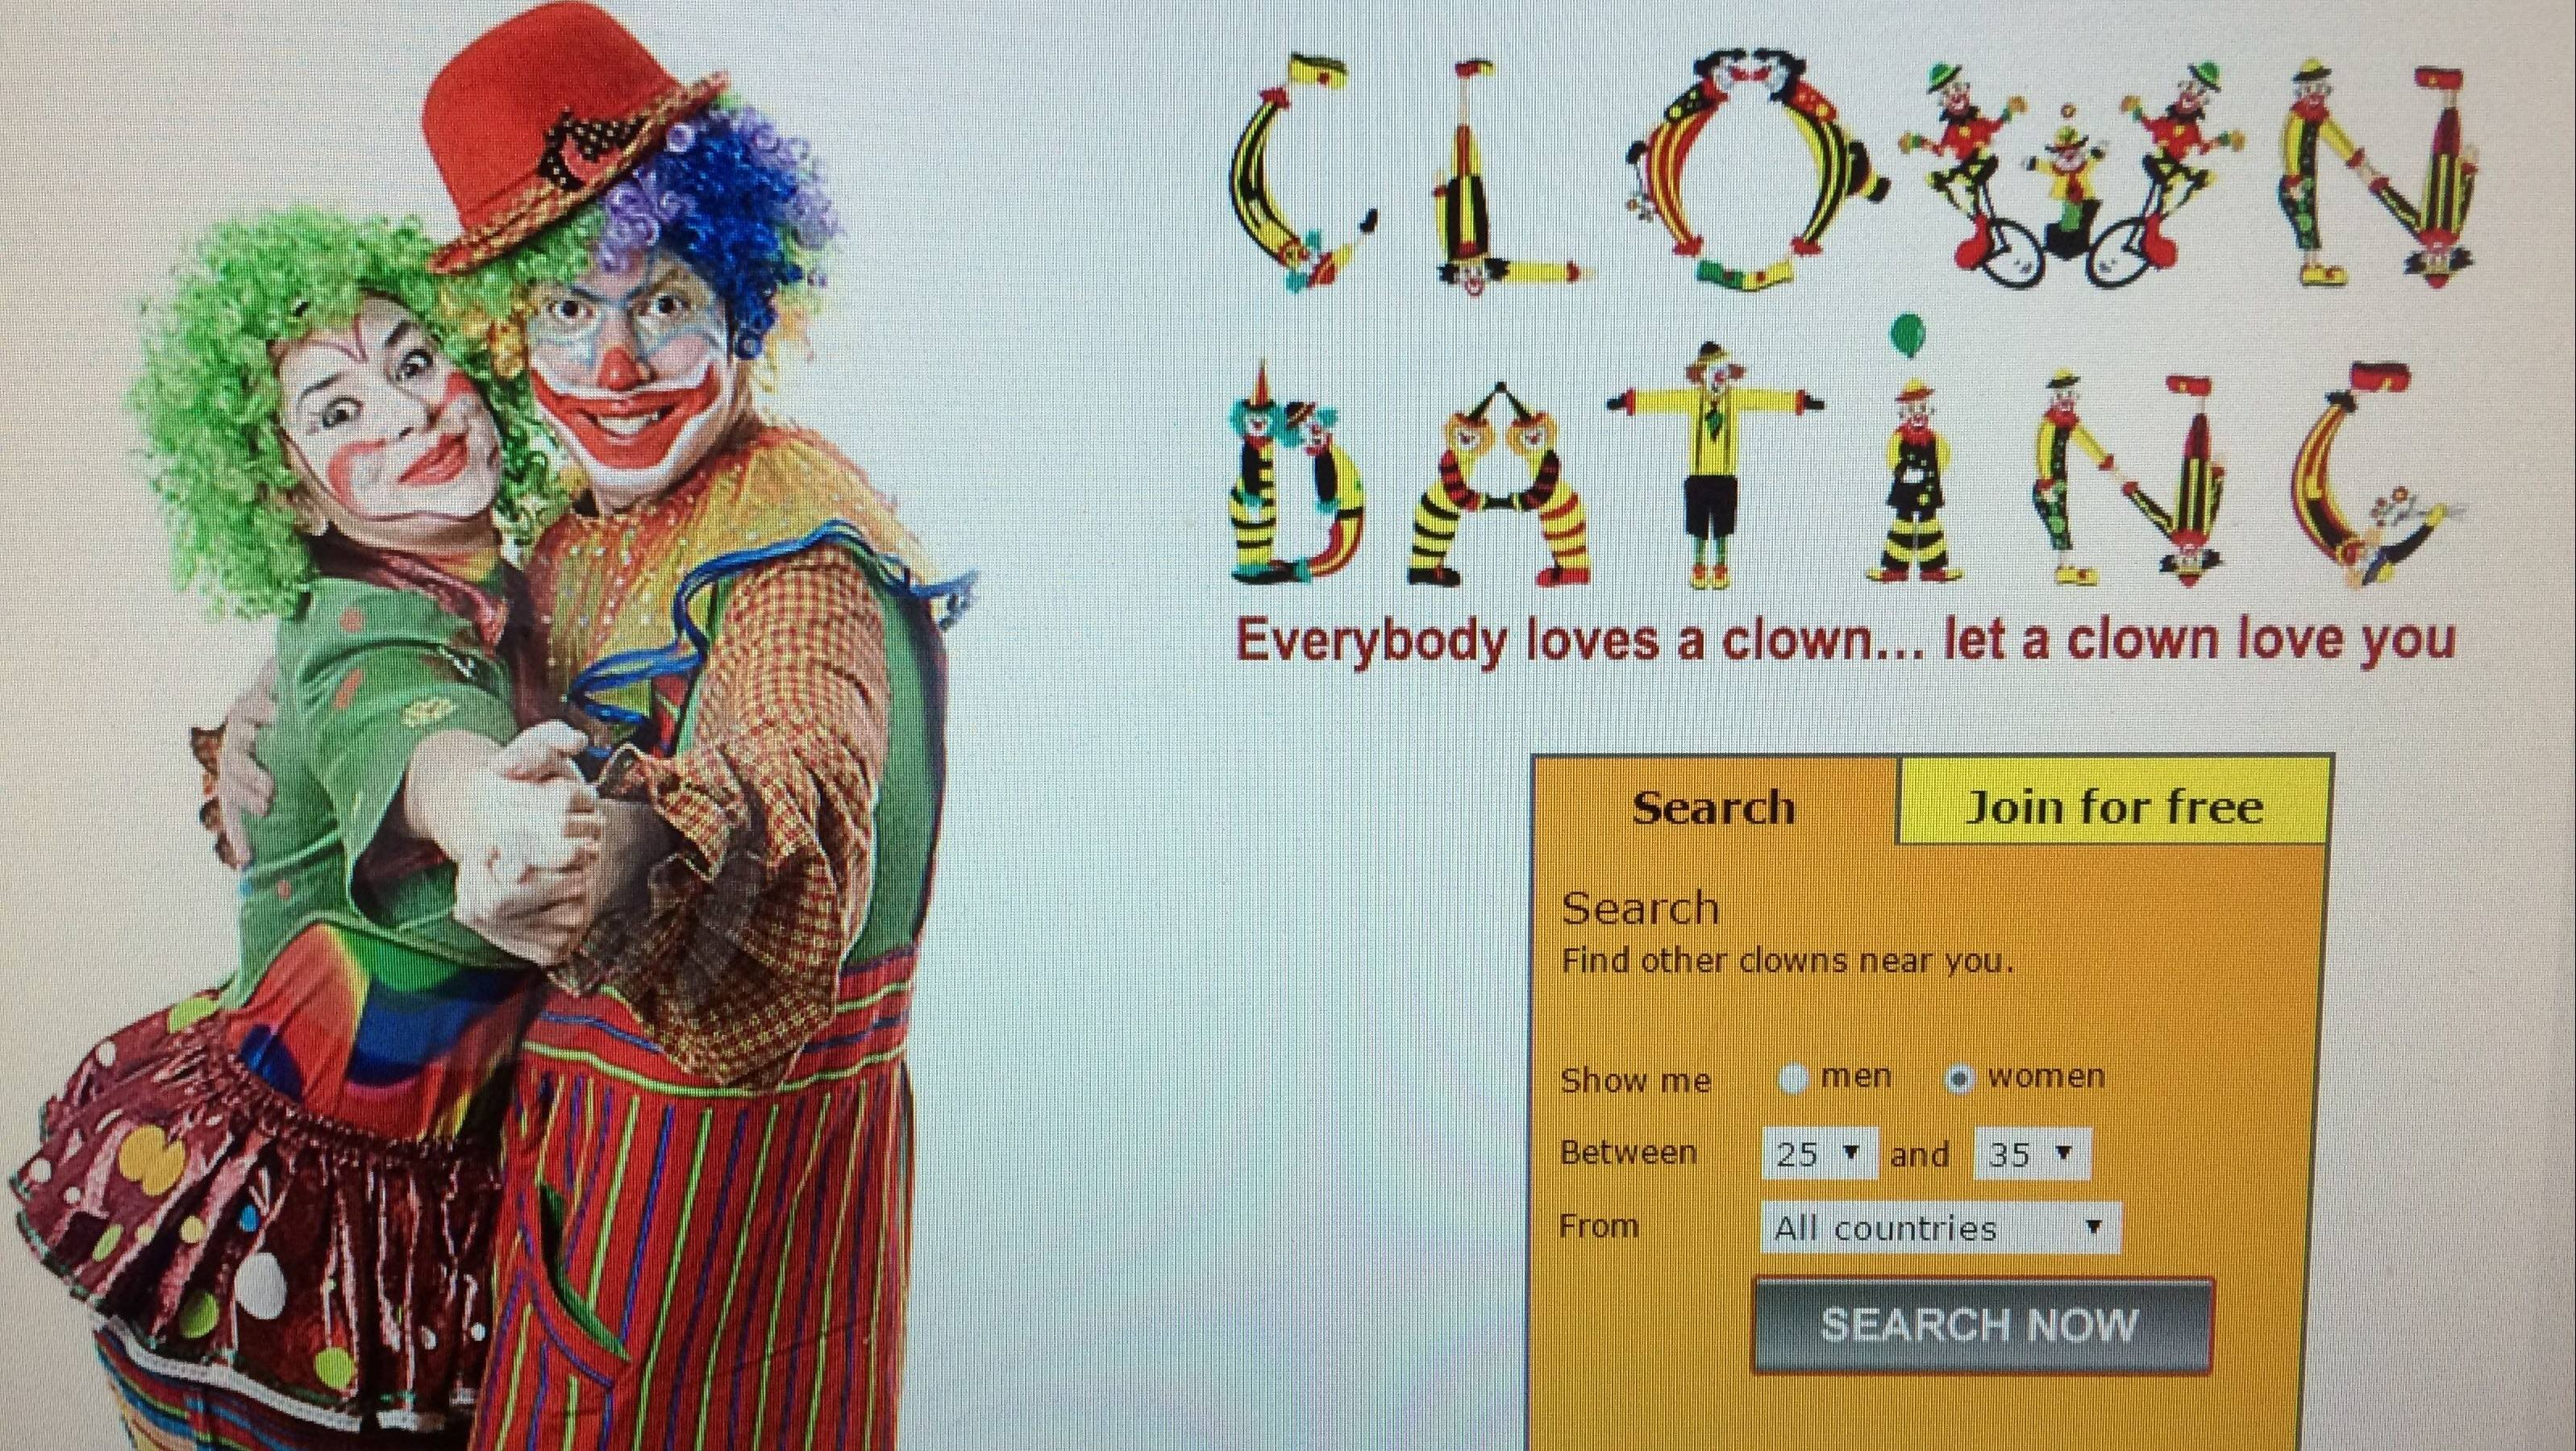 Dating site for clowns